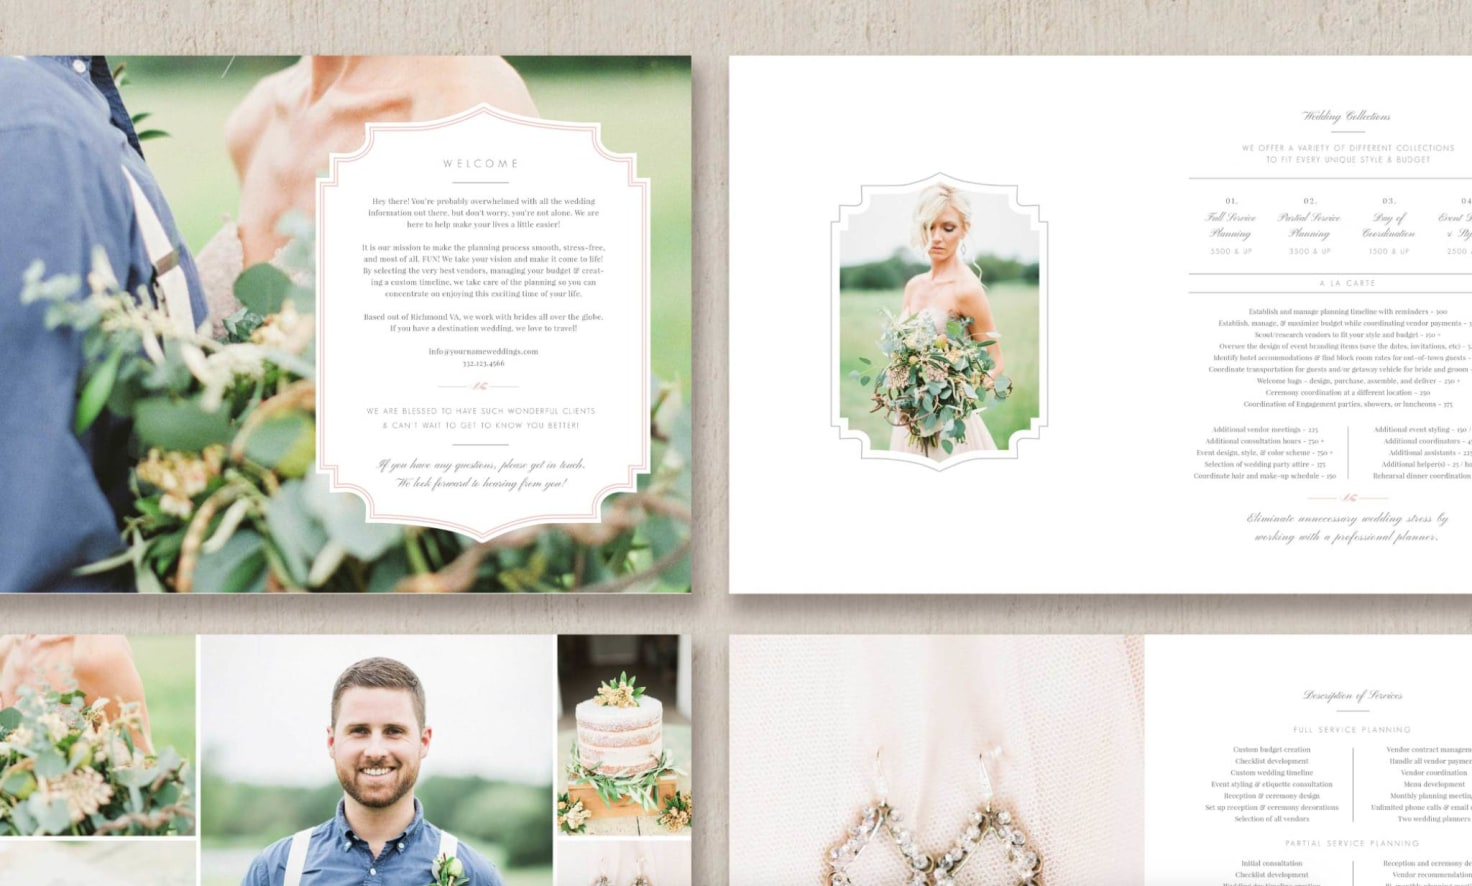 Wedding Photography Welcome Packet: Wedding Planner Magazine Template